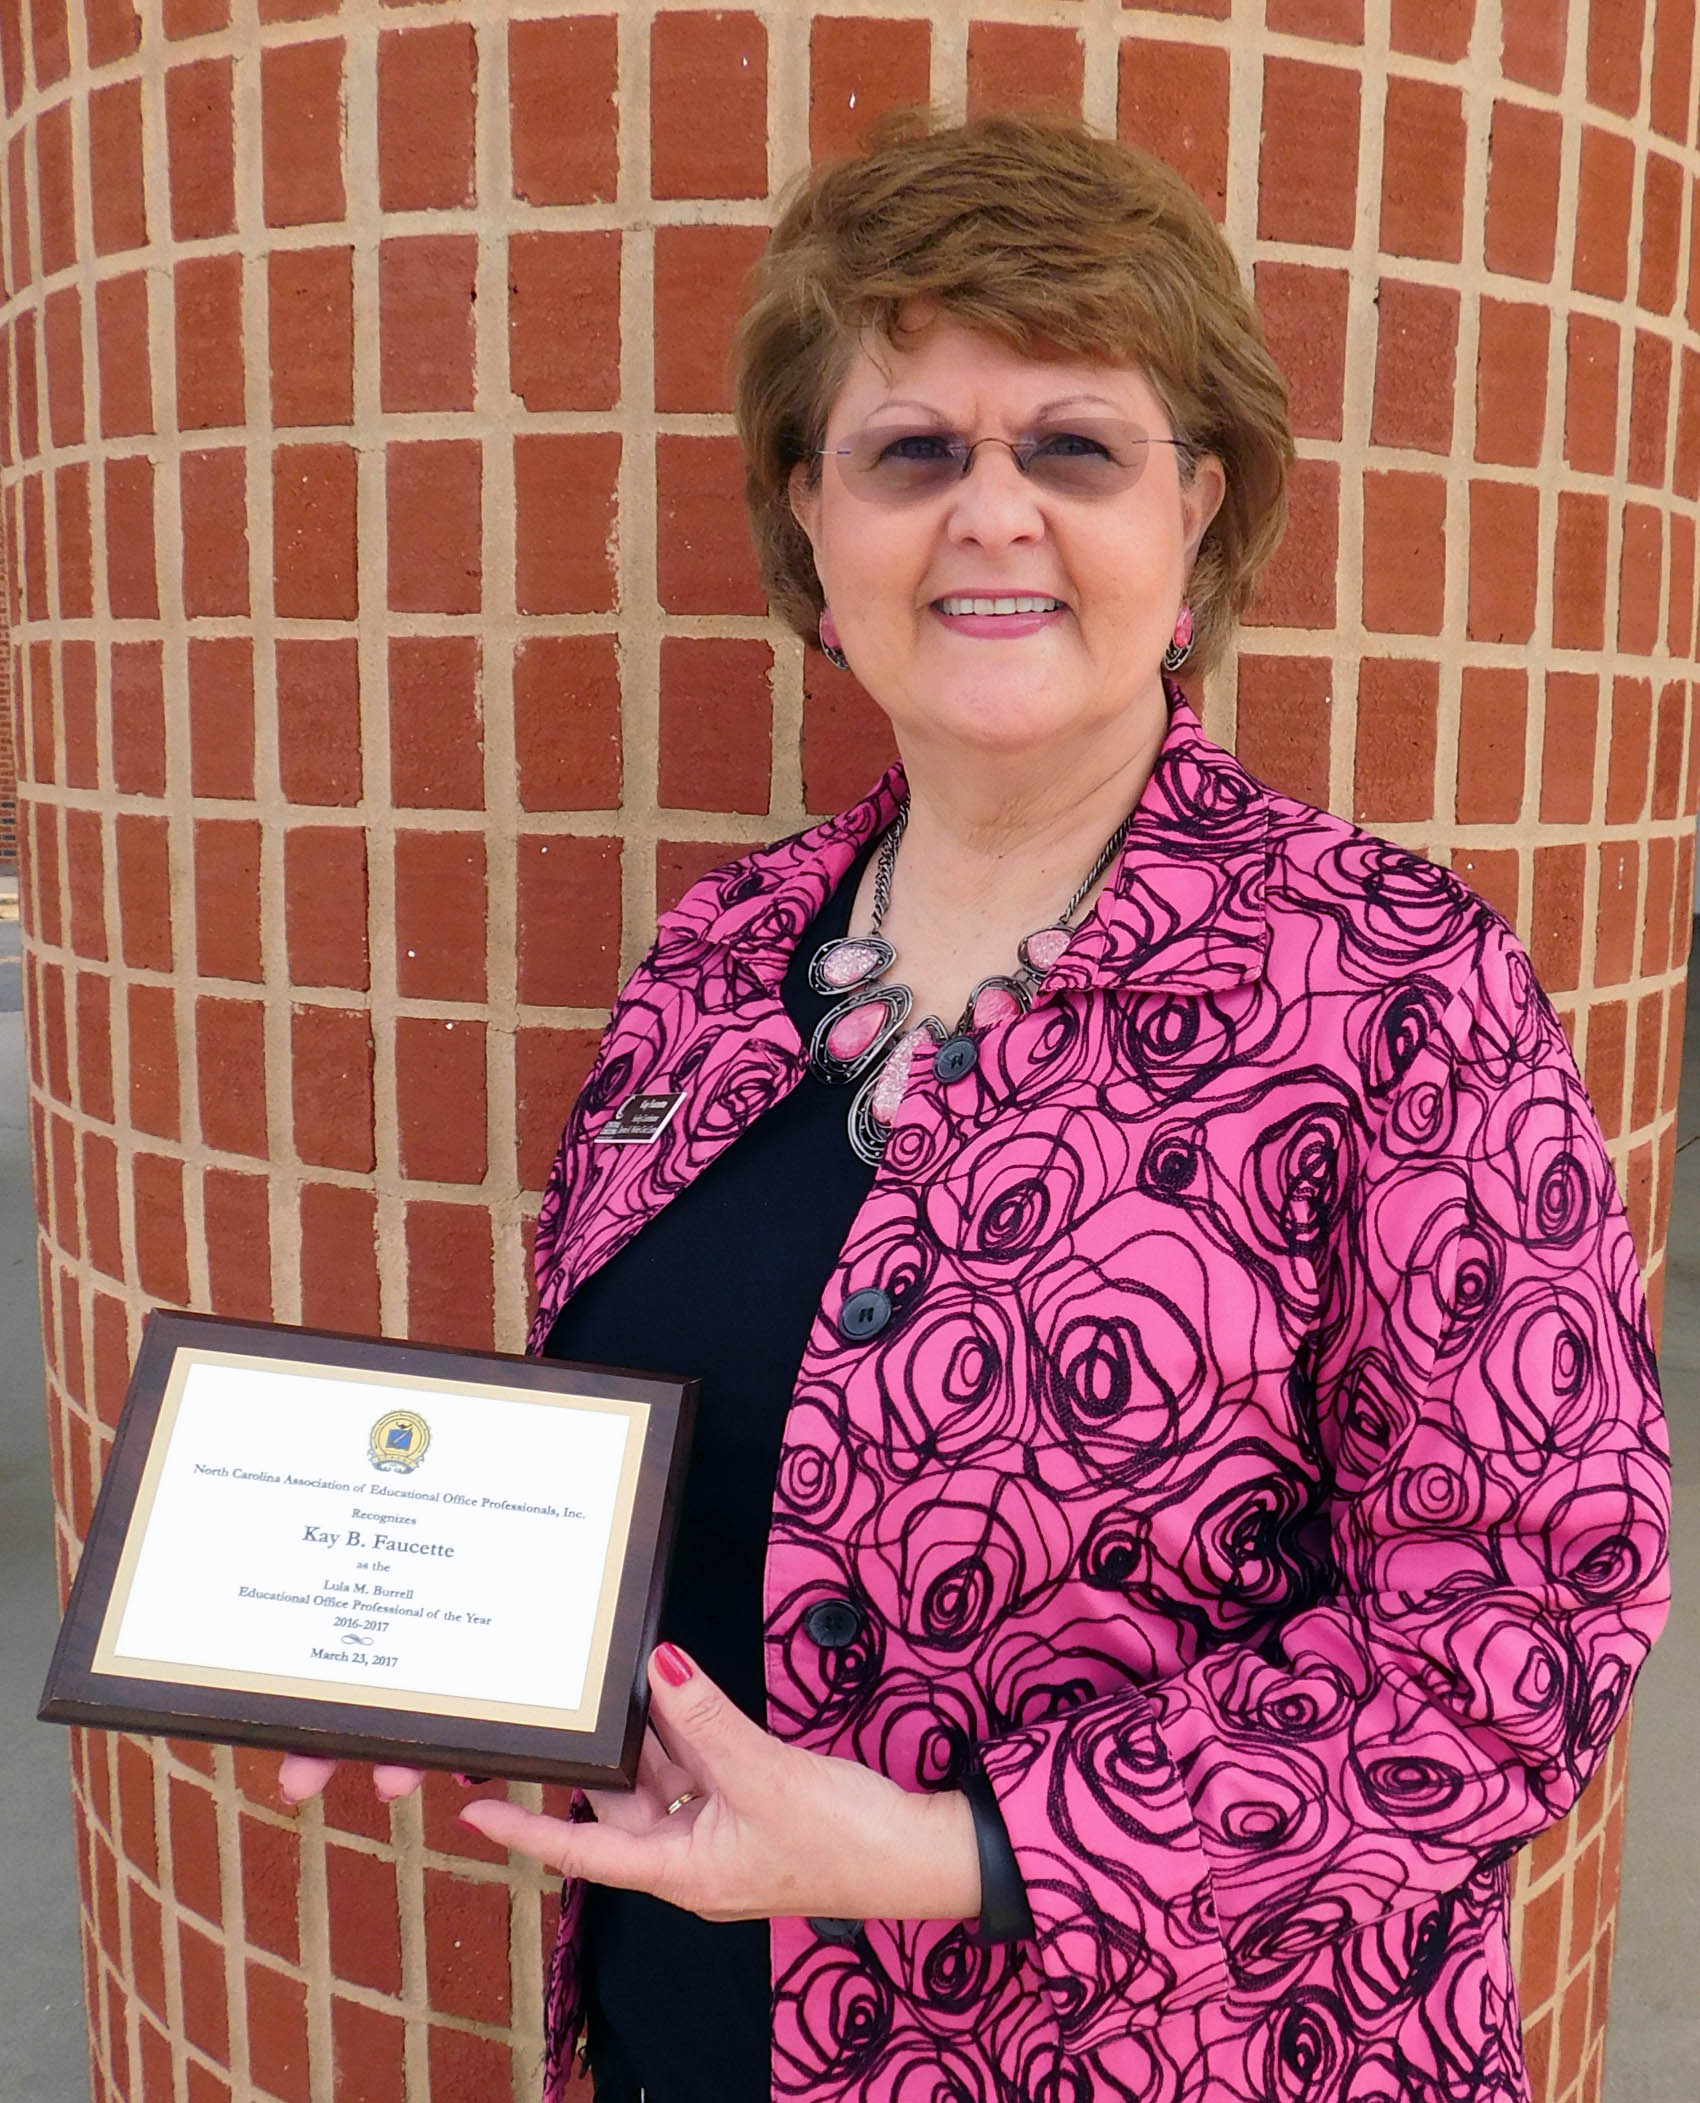 Click to enlarge,  Kay B. Faucette, Facility Coordinator for the Dennis A. Wicker Civic Center, has been awarded the Lula M. Burrell Educational Office Professional of the Year 2016-2017 by the N.C. Association of Educational Office Professionals, Inc. The award was presented on Thursday, March 23, in Winston-Salem.